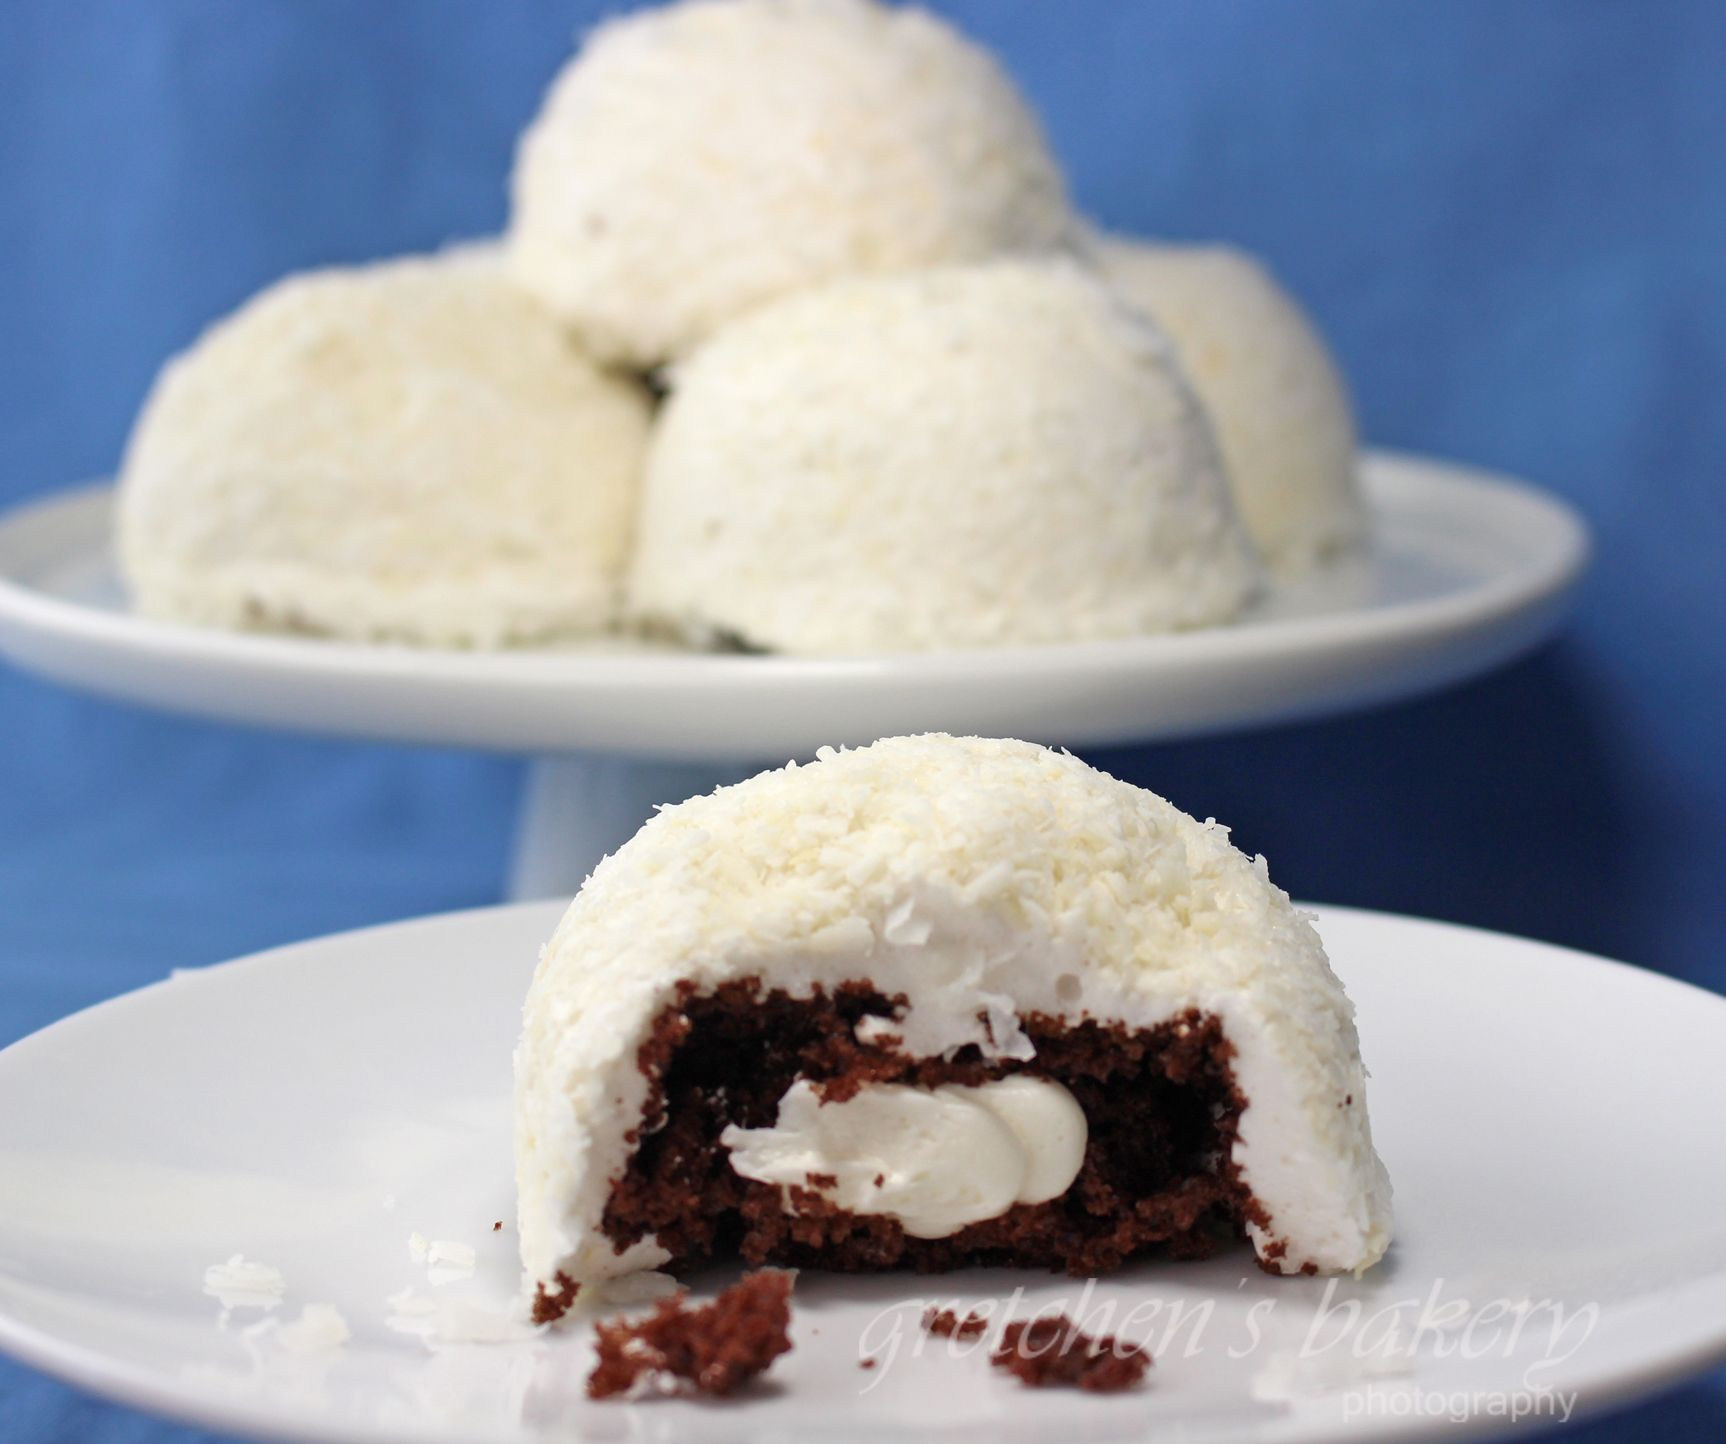 Sno Balls Copy Cat Recipe is better than the real thing! Chocolate cake stuffed with buttercream and covered in marshmallow & coconut!